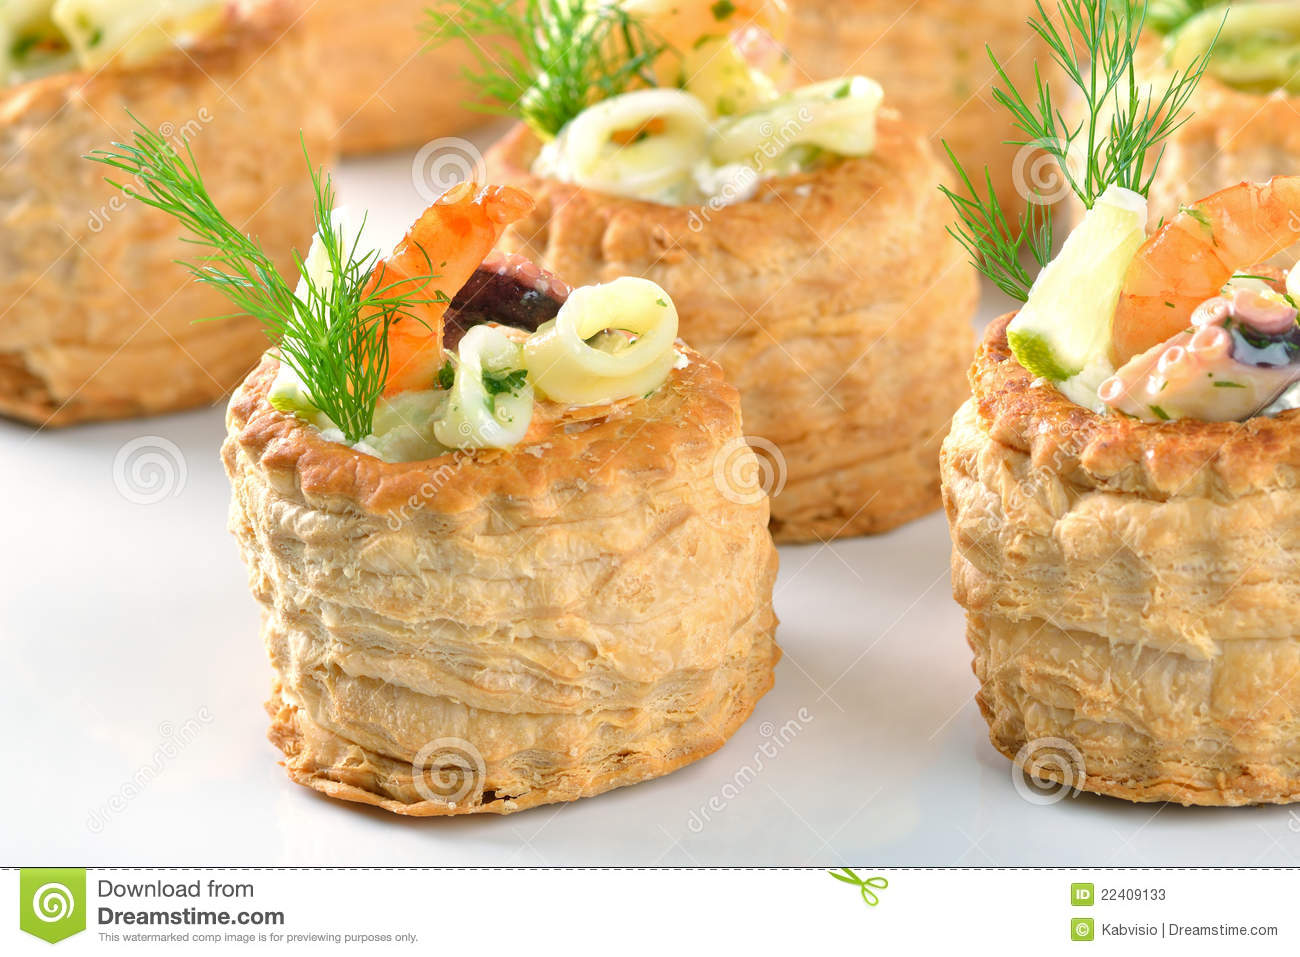 Stuffed puff pastry shells stock photos image 22409133 for Canape pastry shells